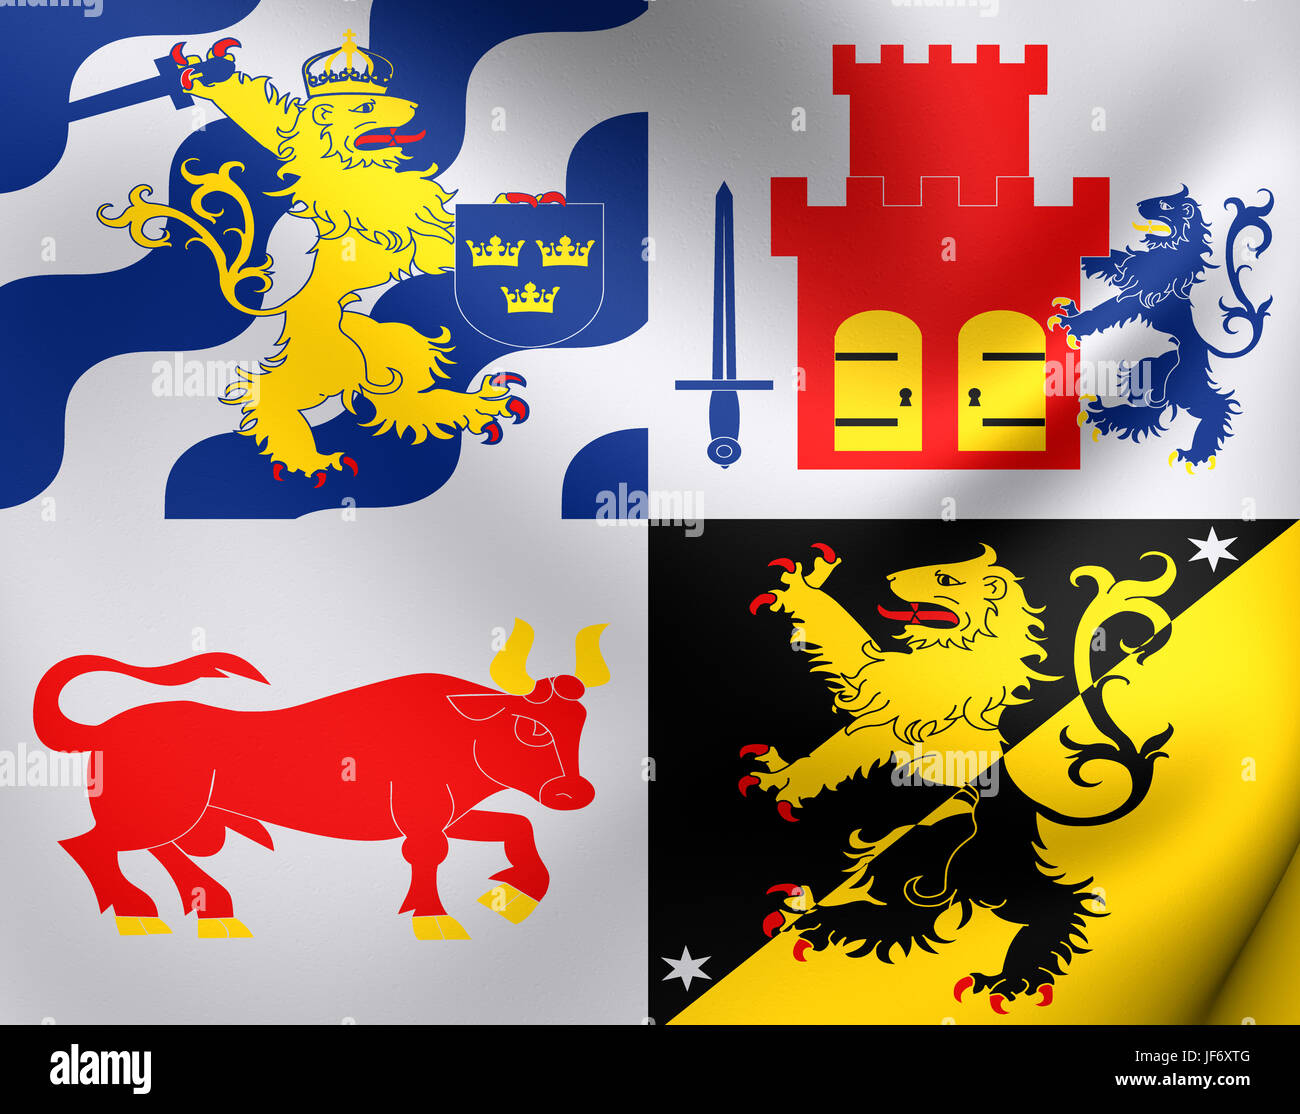 Flag Of Vastra Gotaland County Sweden Stock Photo Alamy